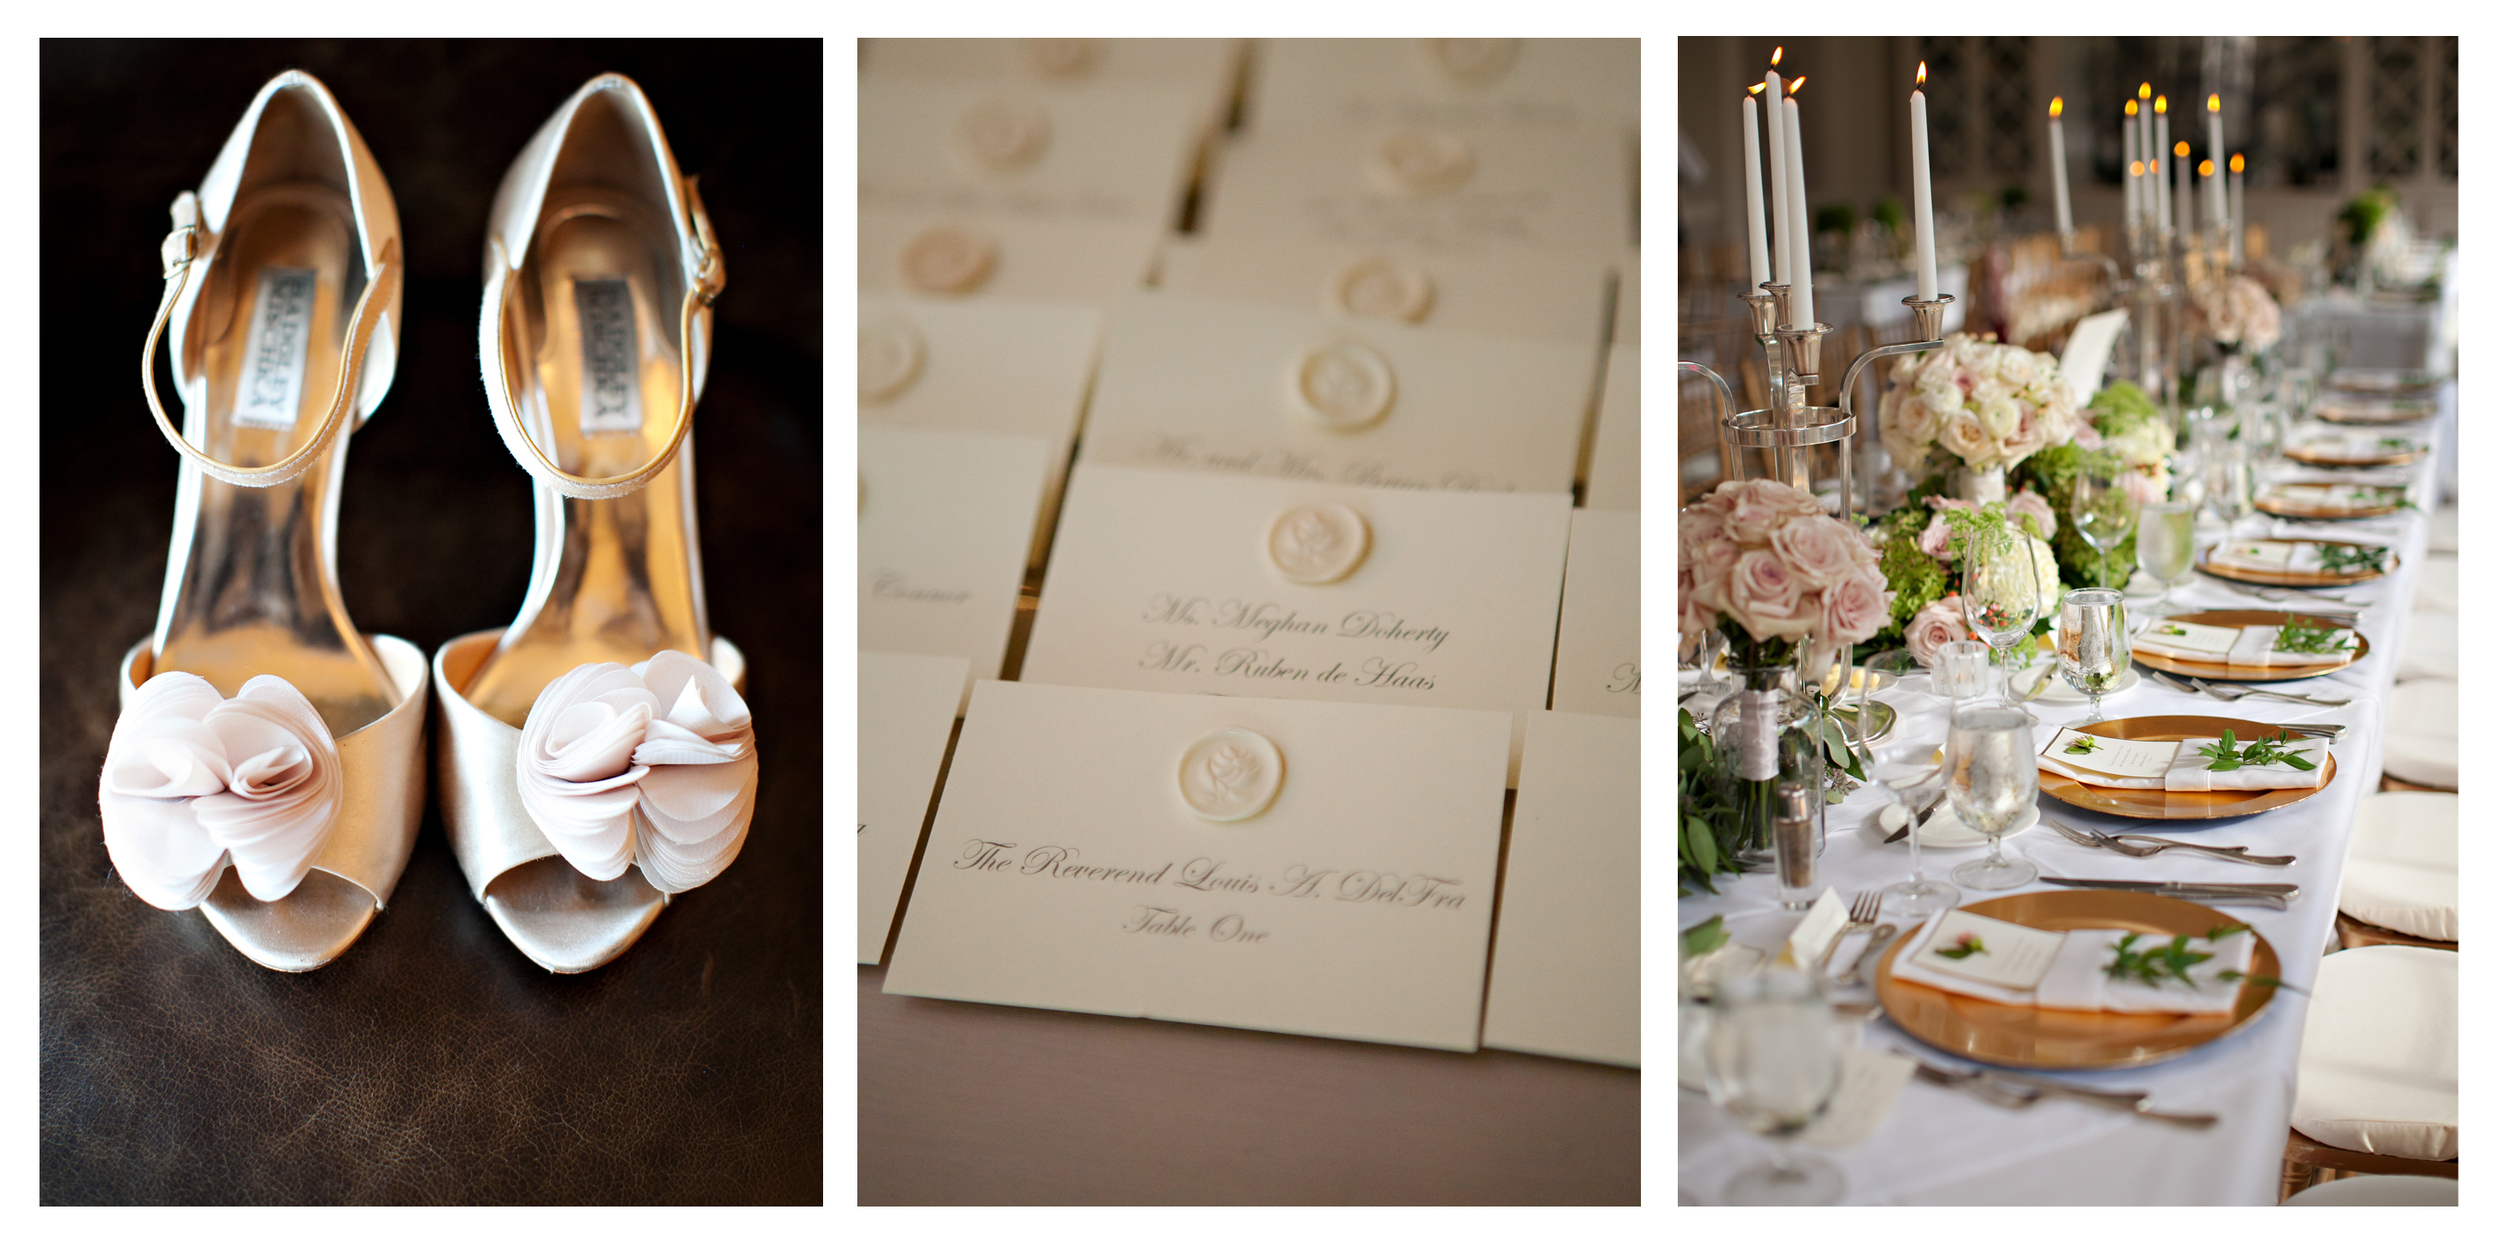 Copy of bridalbliss.com | Portland and Seattle Wedding and Event Planning and Design | Bridal Bliss